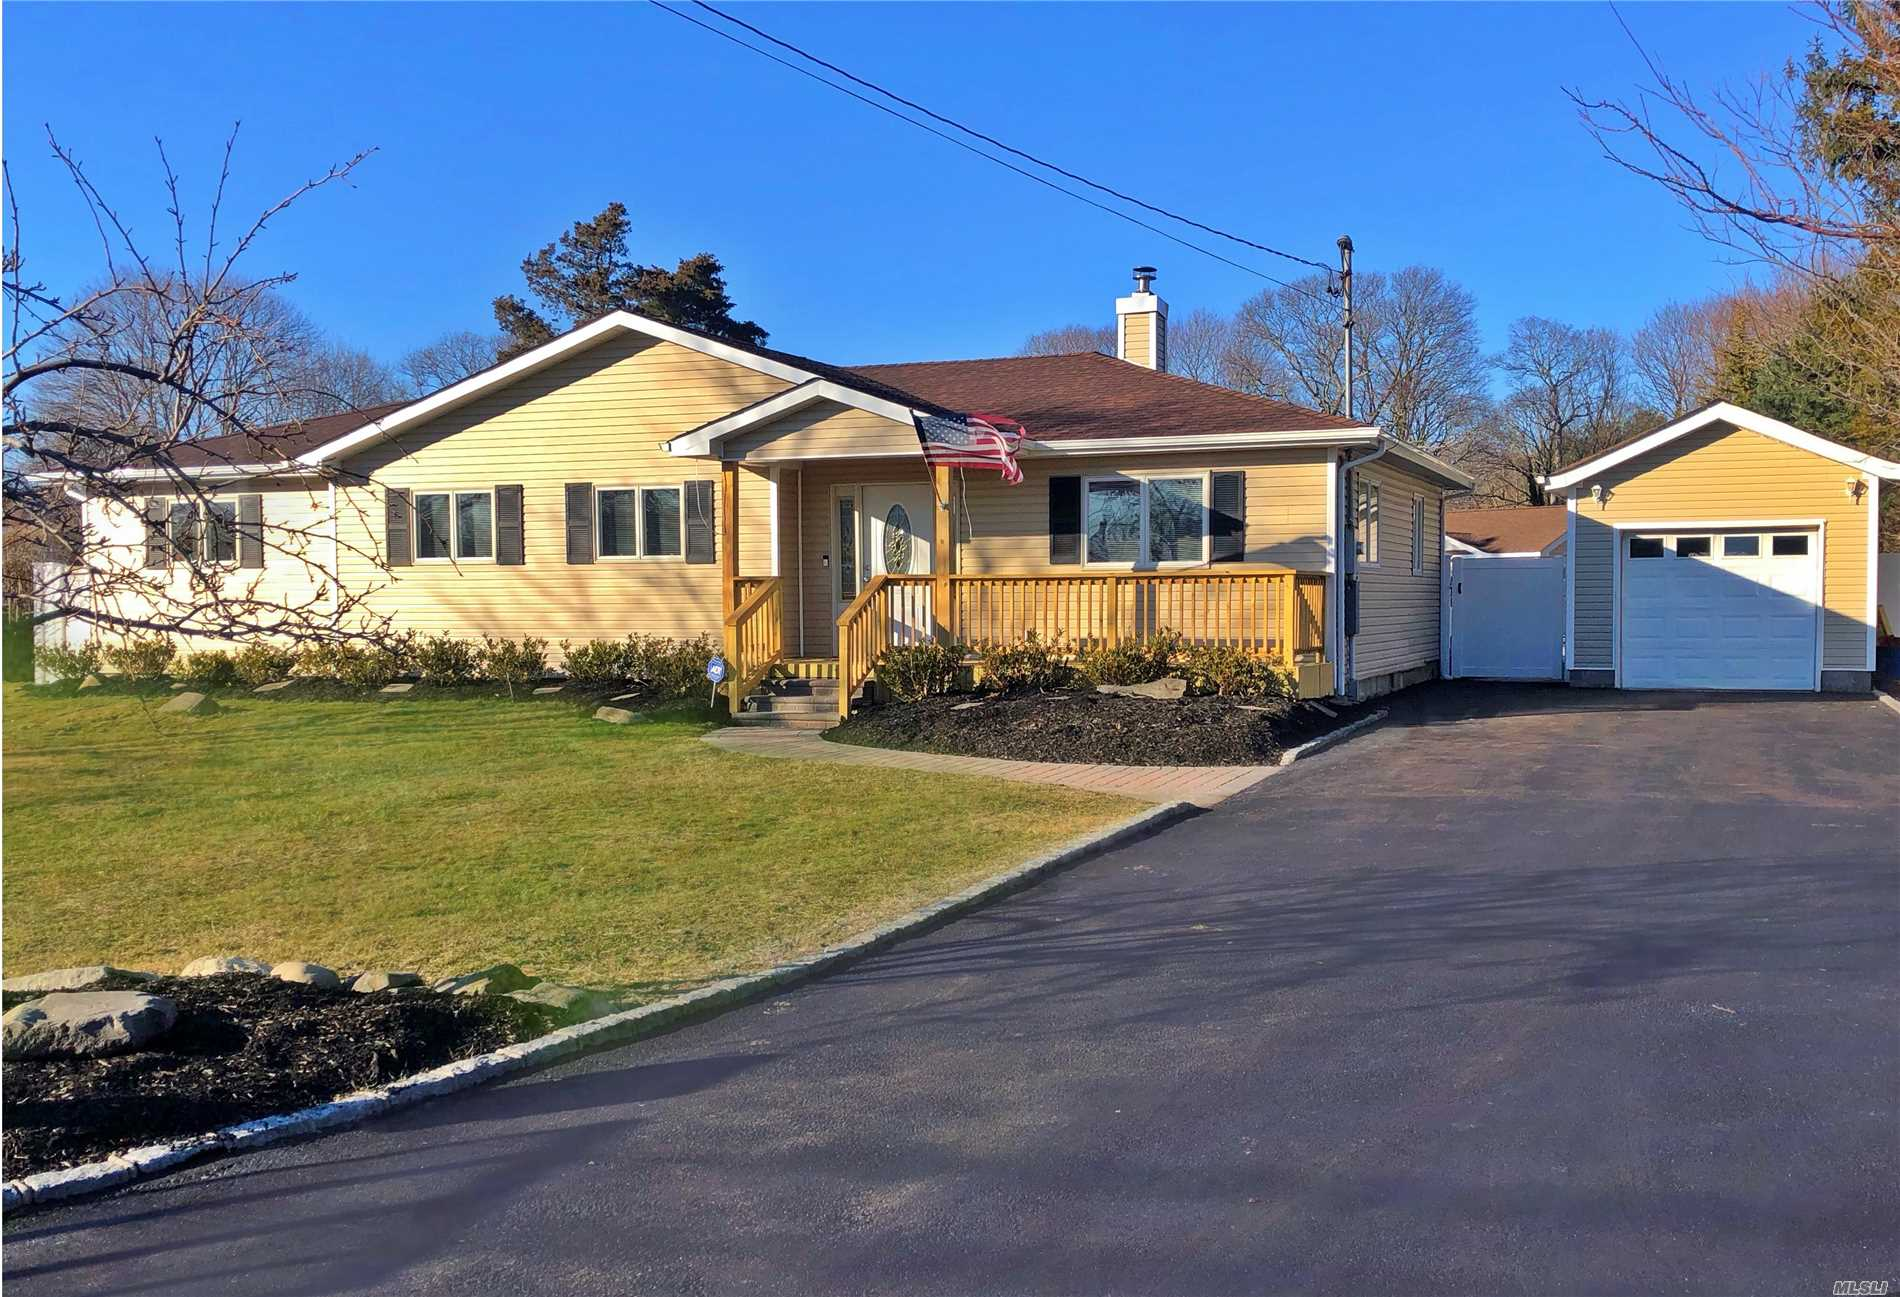 Fully renovated custom 4br-2.5 bth 2800sq ft Sprawling Ranch on a shy acre located south of Montauk Highway in Center Moriches New flr plan new electric new plumbing new heating/Cac Kit SS appli granite island Mstr suite w/Lg closet & custom shower HrdWd Flrs Anderson wood windows 20x40 Igp & large paver patio 1300 sq ft bsmt 450sq ft pool house 12x26 Det gar 6 zones Igs and more Senix marina/boat slips fishing piers restaurants all just minutes away